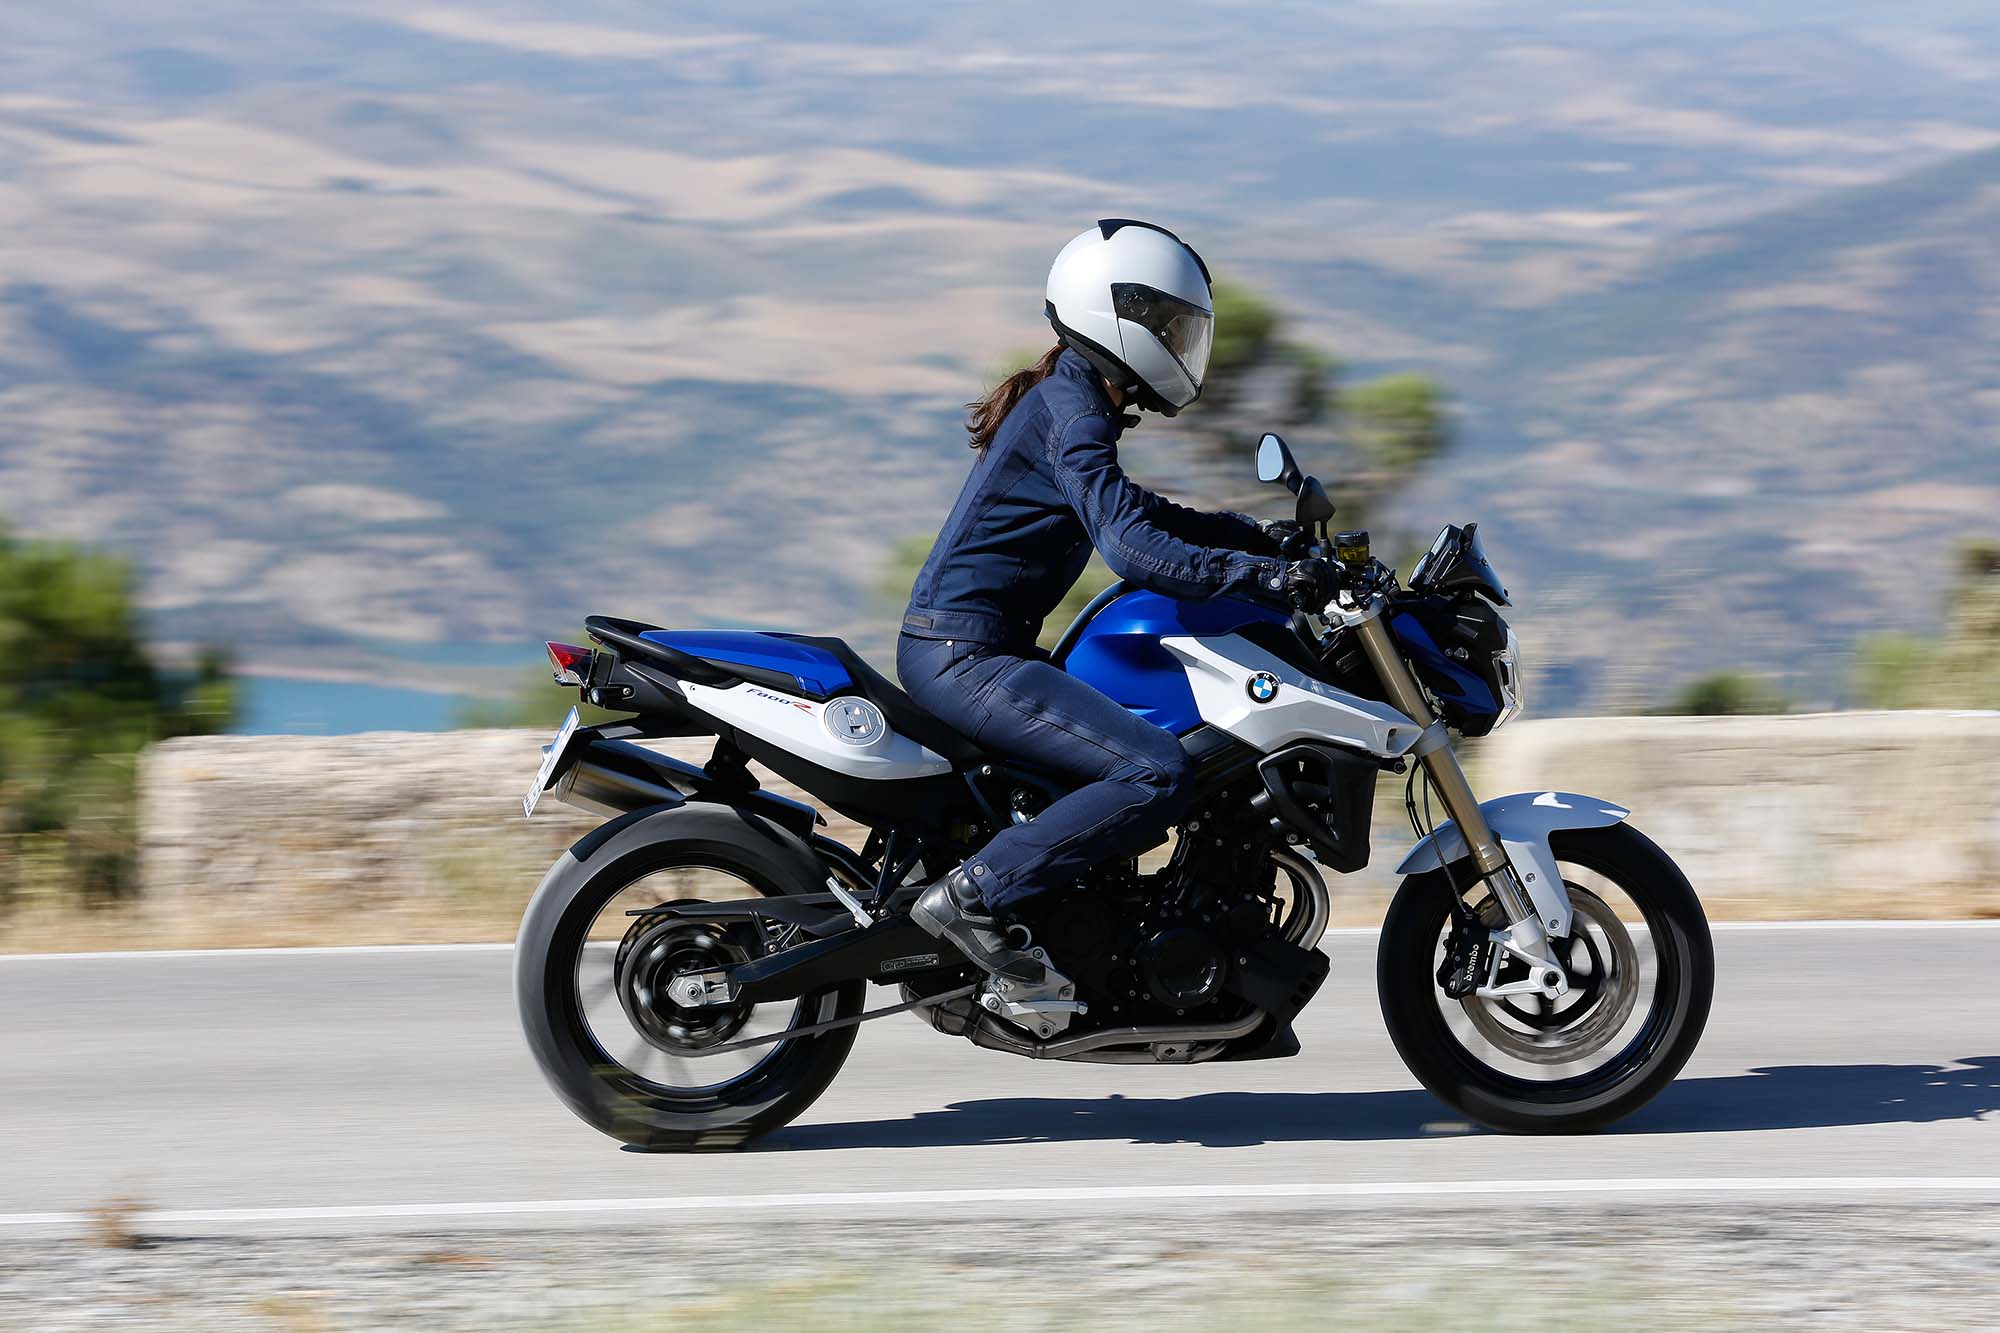 2015 BMW F800R: pics, specs and information